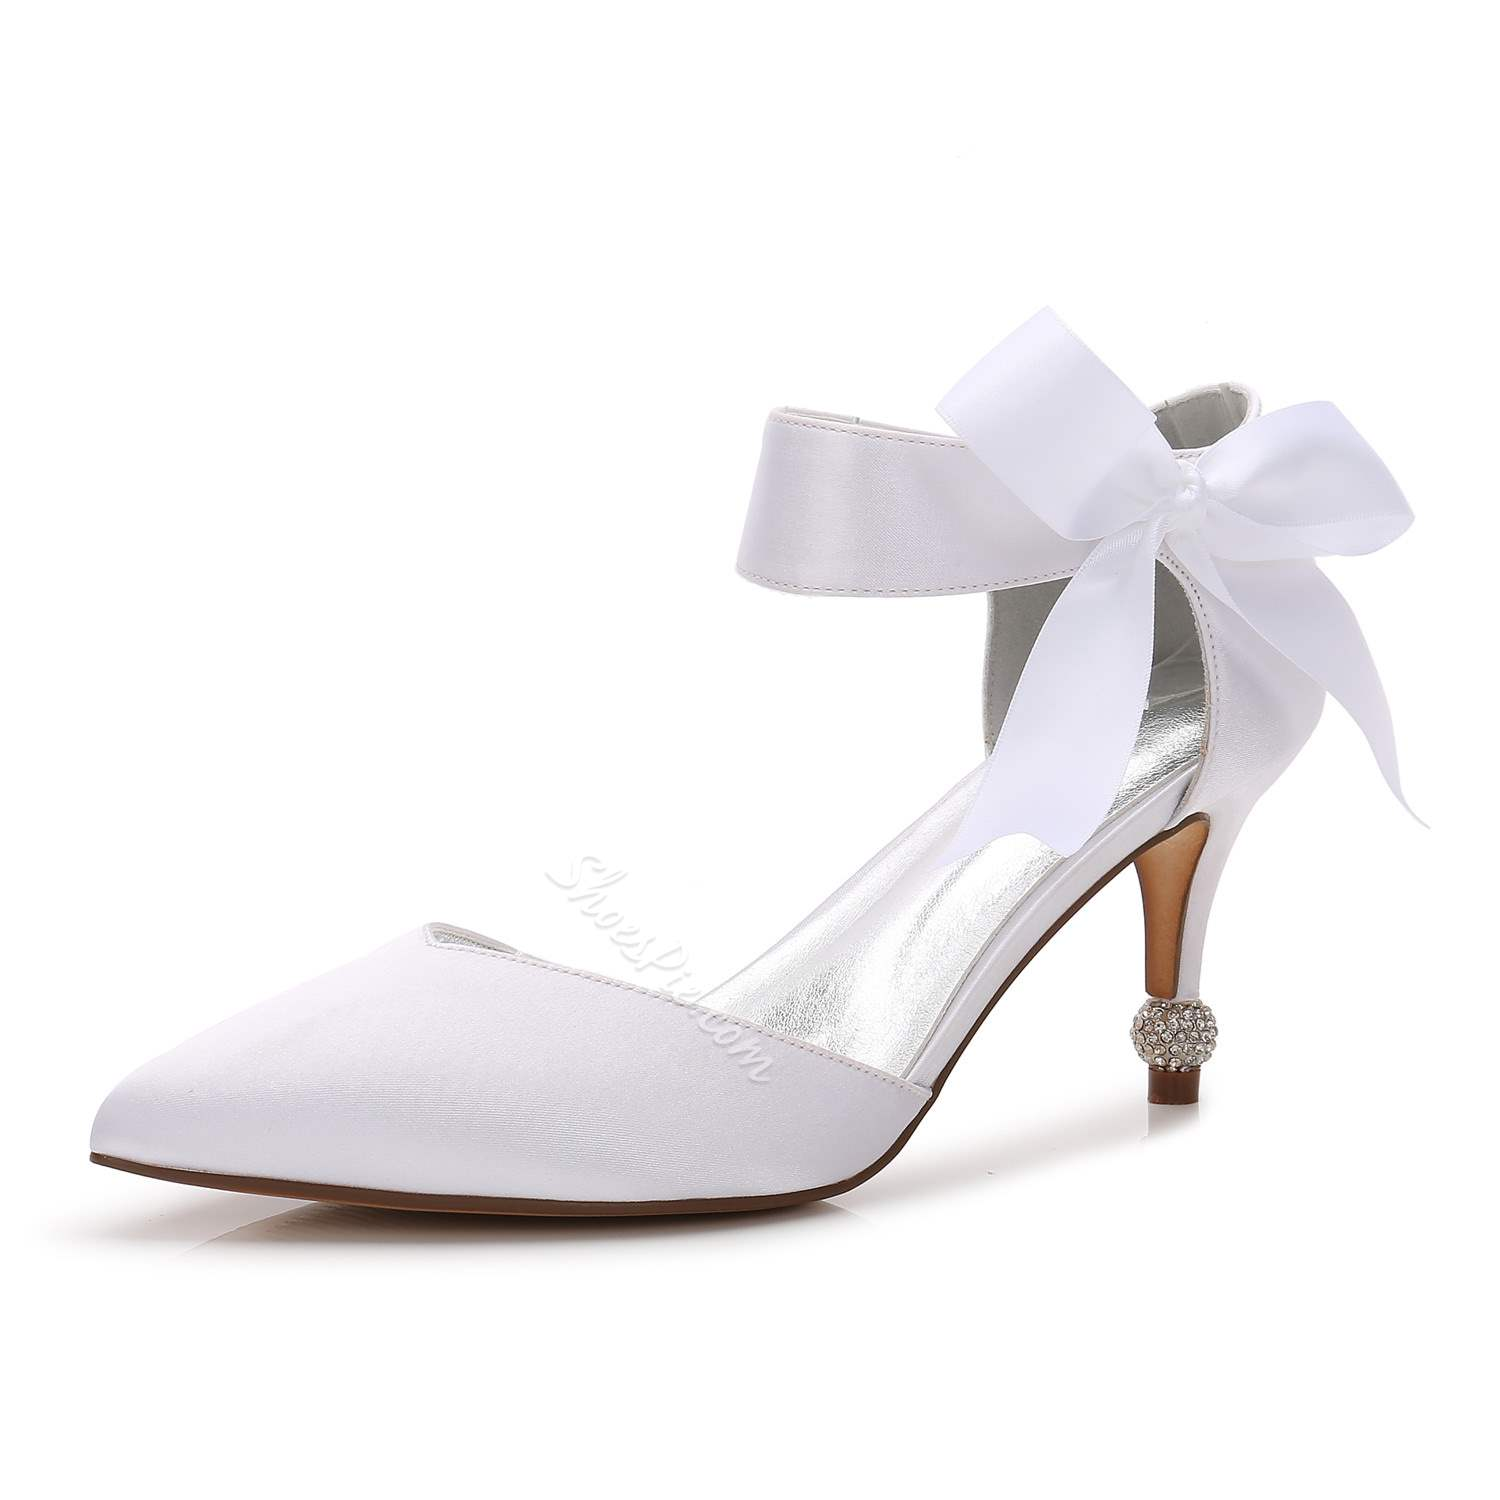 Shoespie Bowknot Stiletto Heel Slip-On Rhinestone Wedding Bridal Shoes